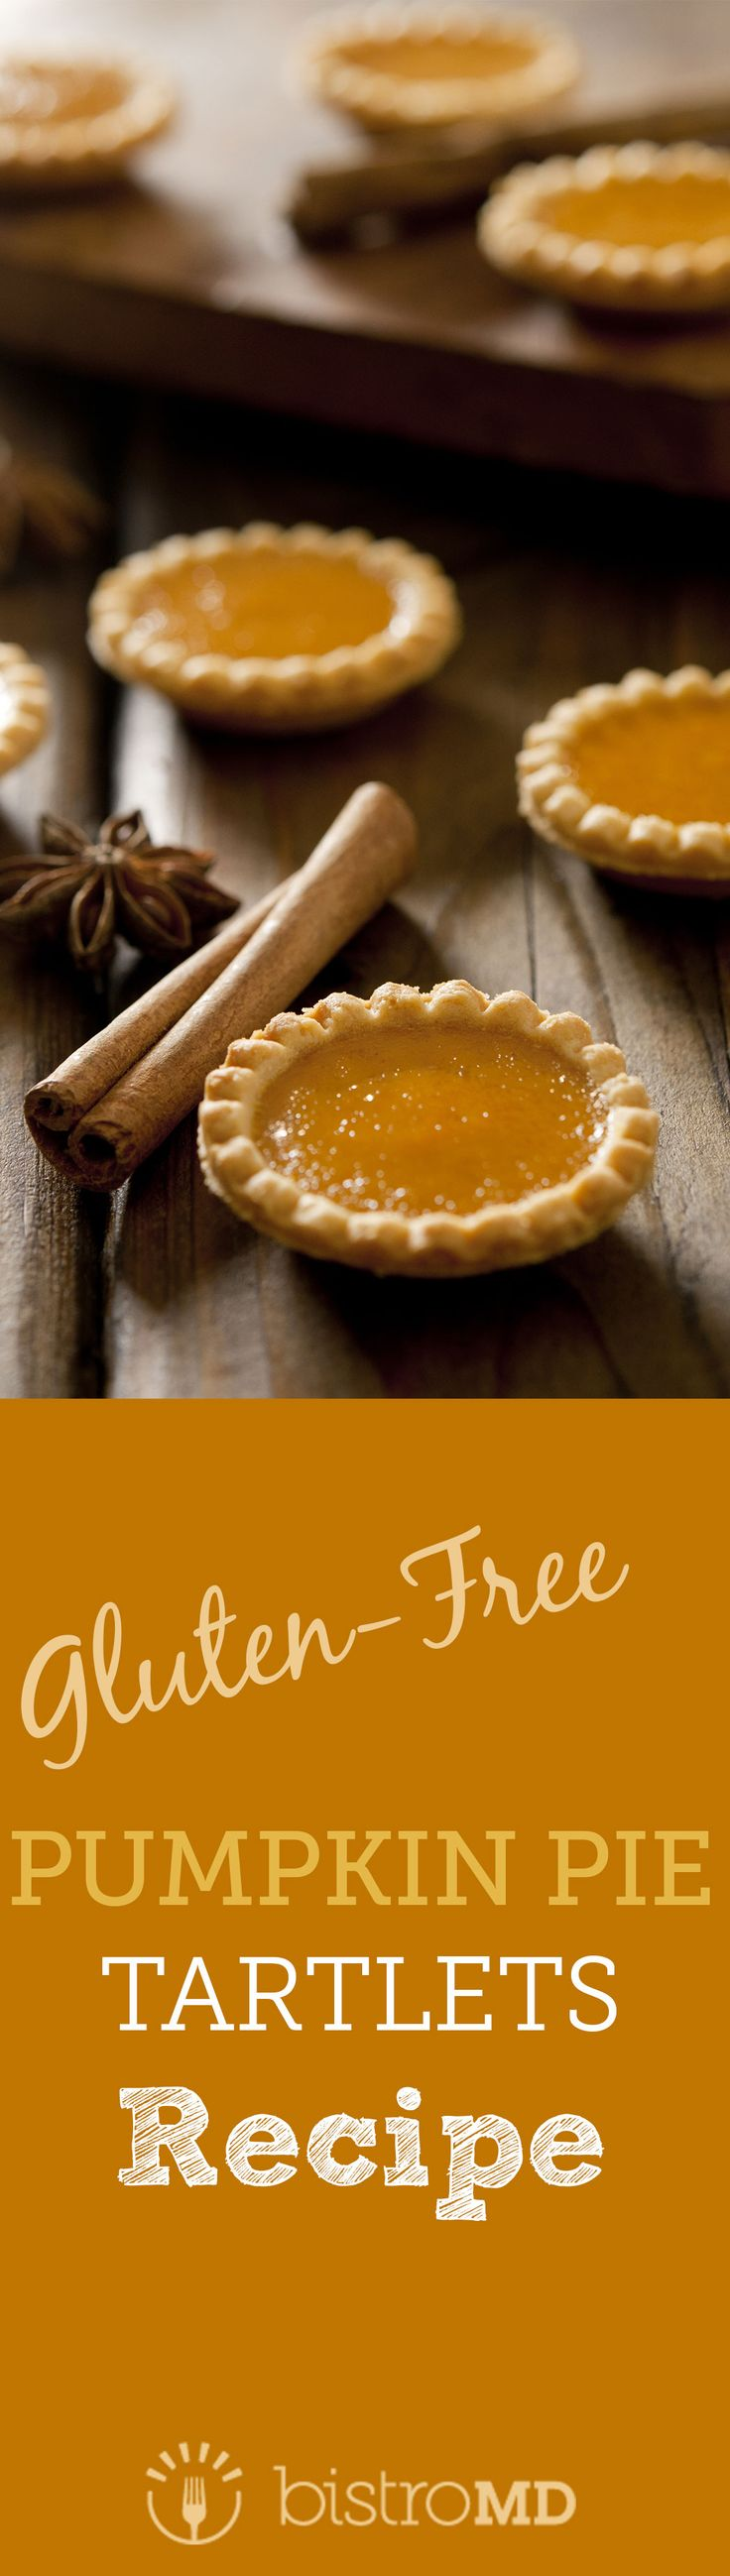 BistroMD's chefs have created pumpkin pie tartlets for you to enjoy without the guilt. Enjoy our mini pumpkin pie tarts with a minimal-ingredient crust and filling this holiday season using simple ingredients. These Pumpkin Pie Tarts not only taste delicious but are also gluten-free, using heart healthy almond flour as the main crust ingredient.